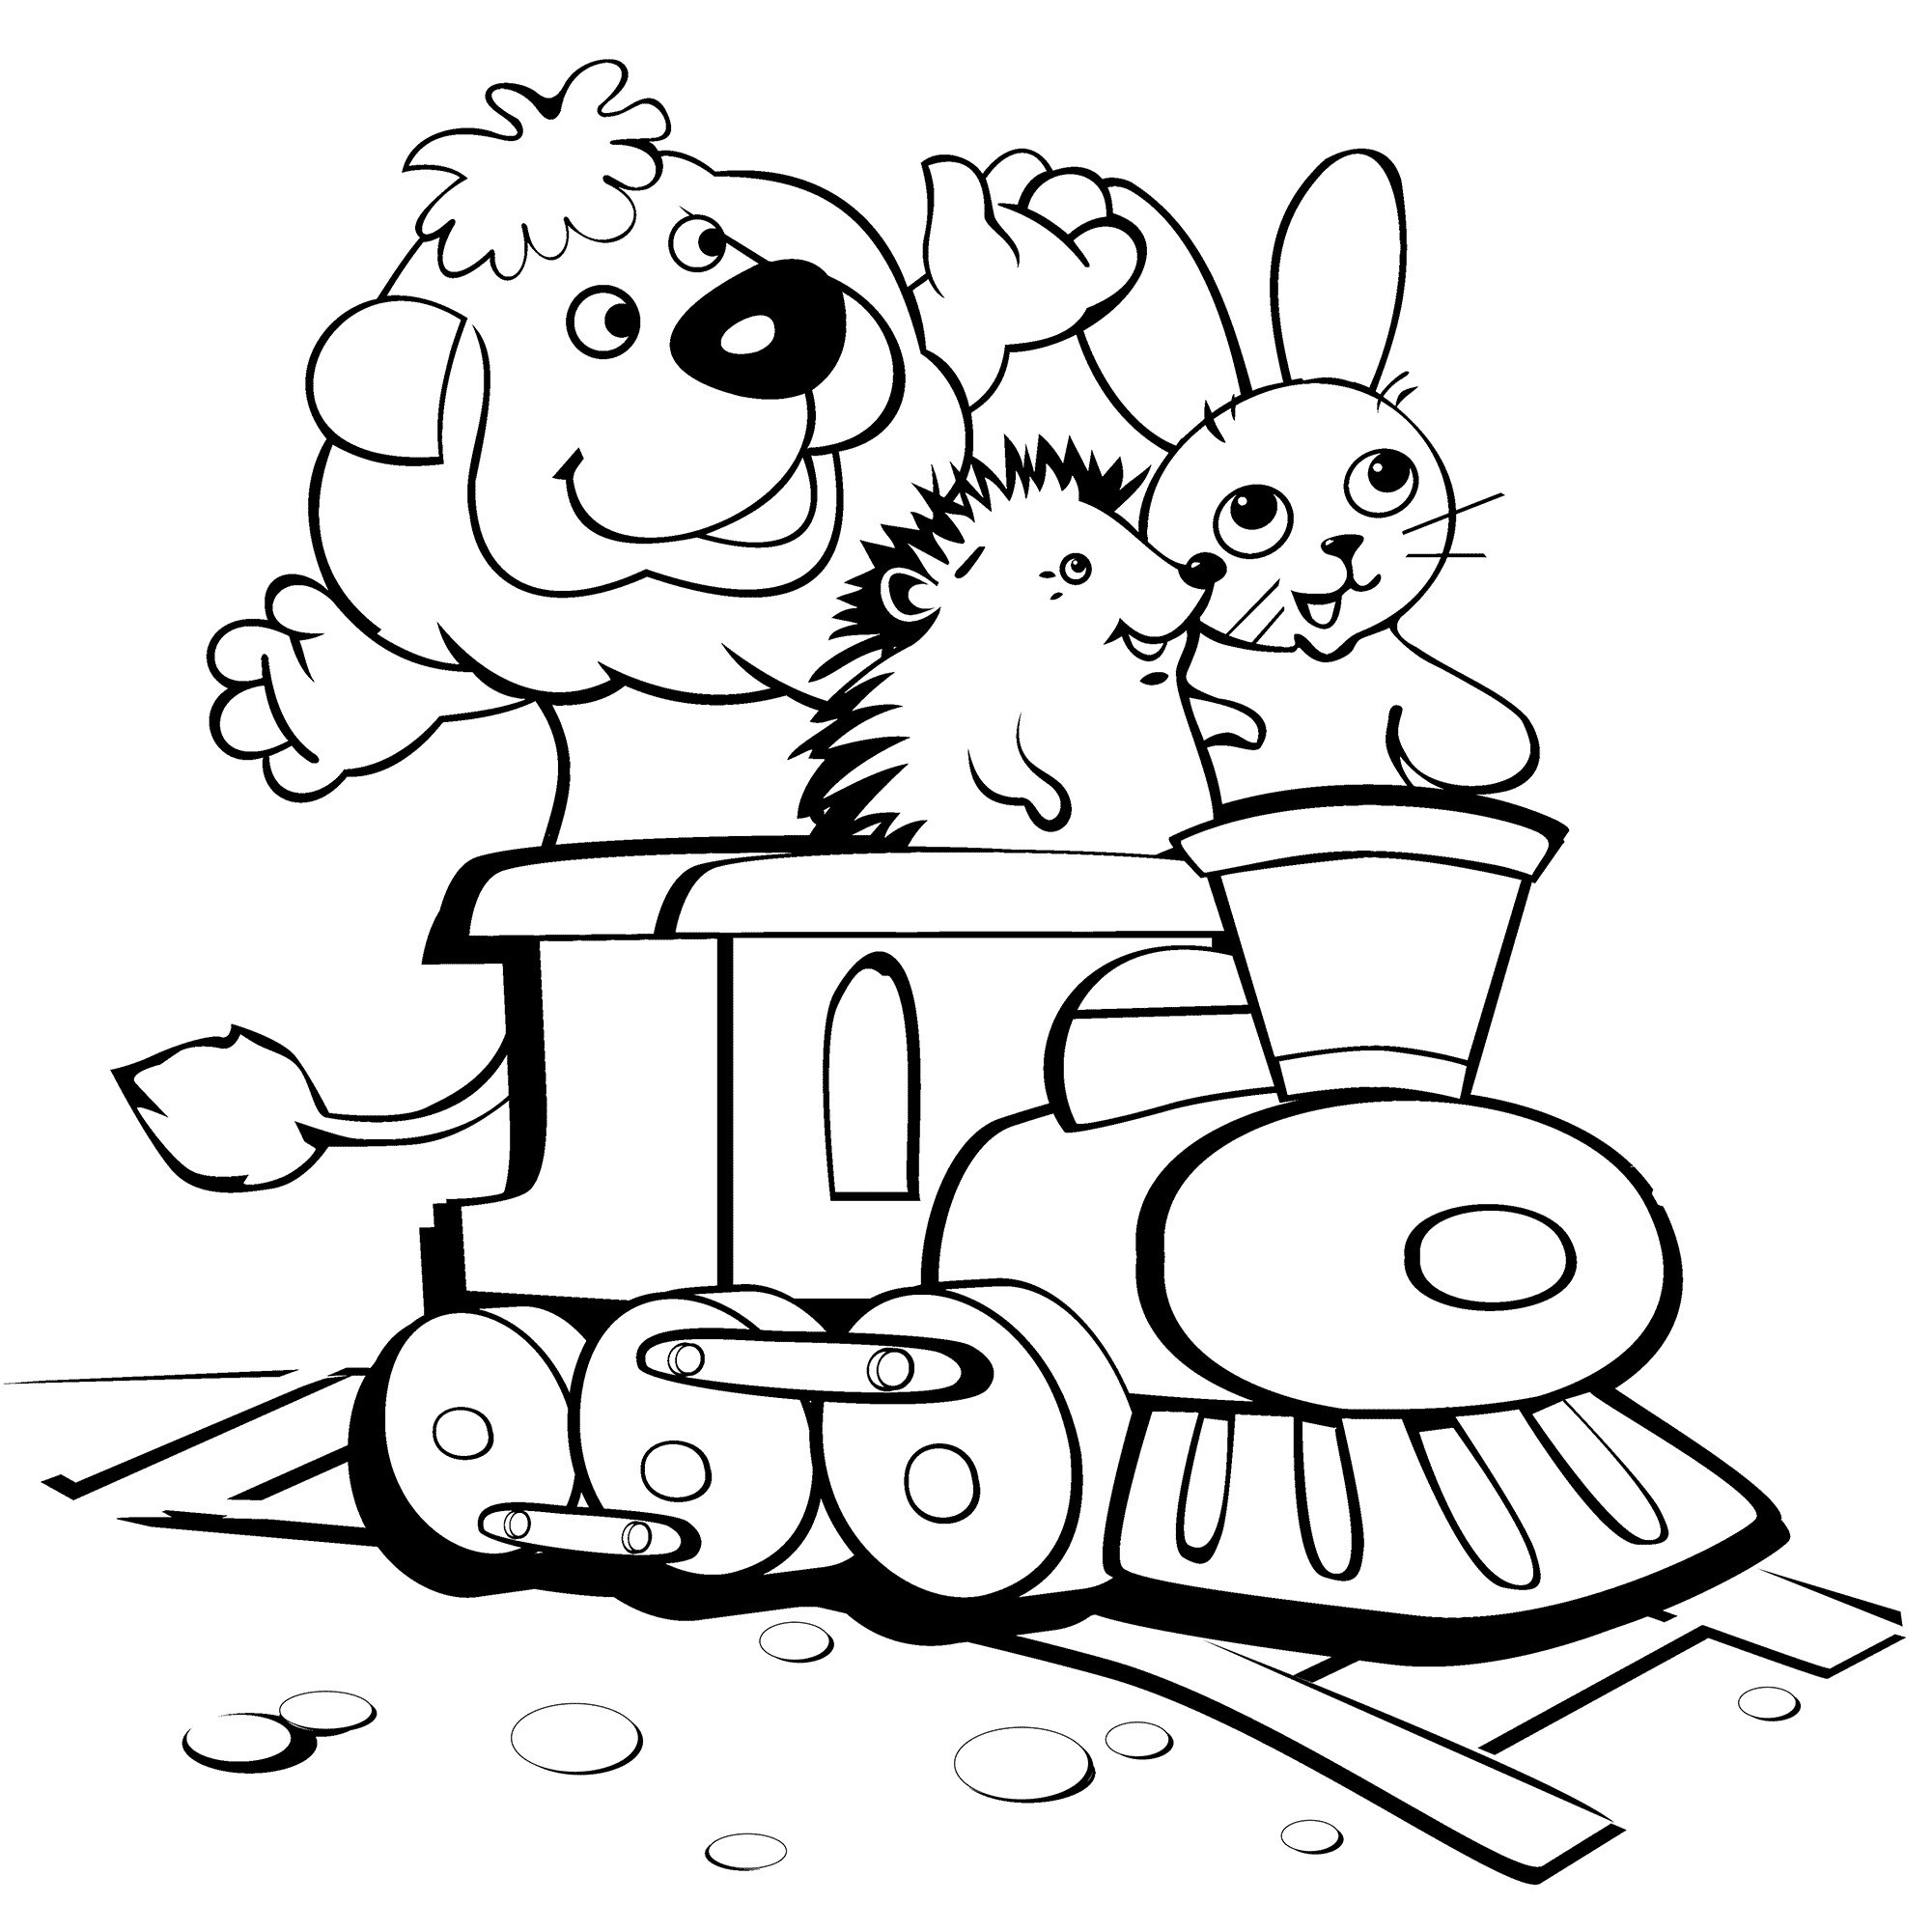 Kids Coloring Picture  Free Printable Funny Coloring Pages For Kids